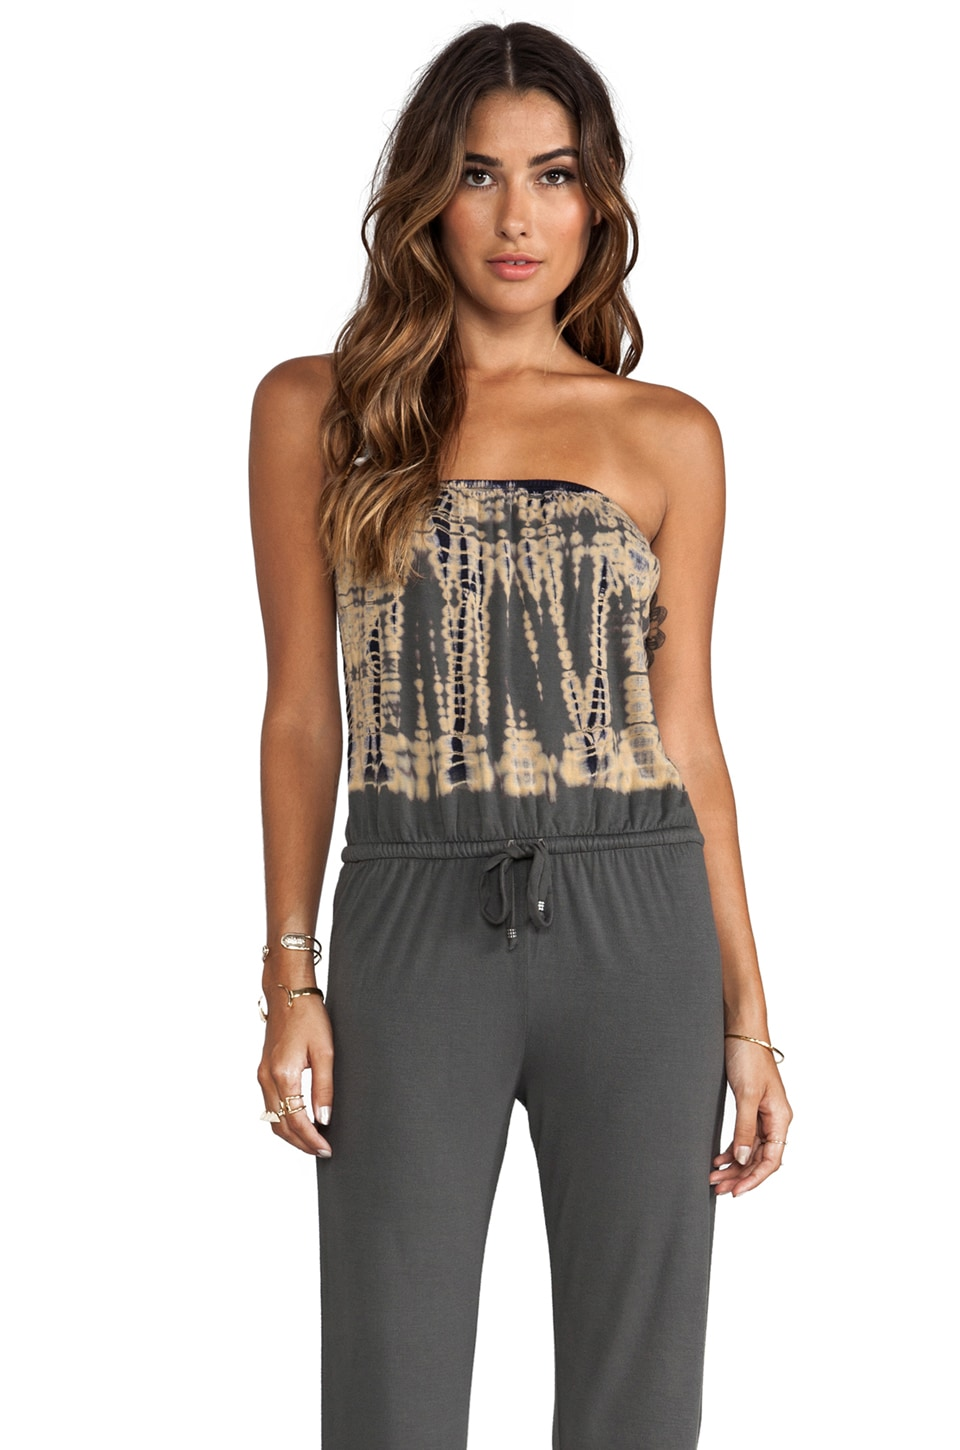 Gypsy 05 Foudnation Bamboo Strapless Jumper in Asphalt